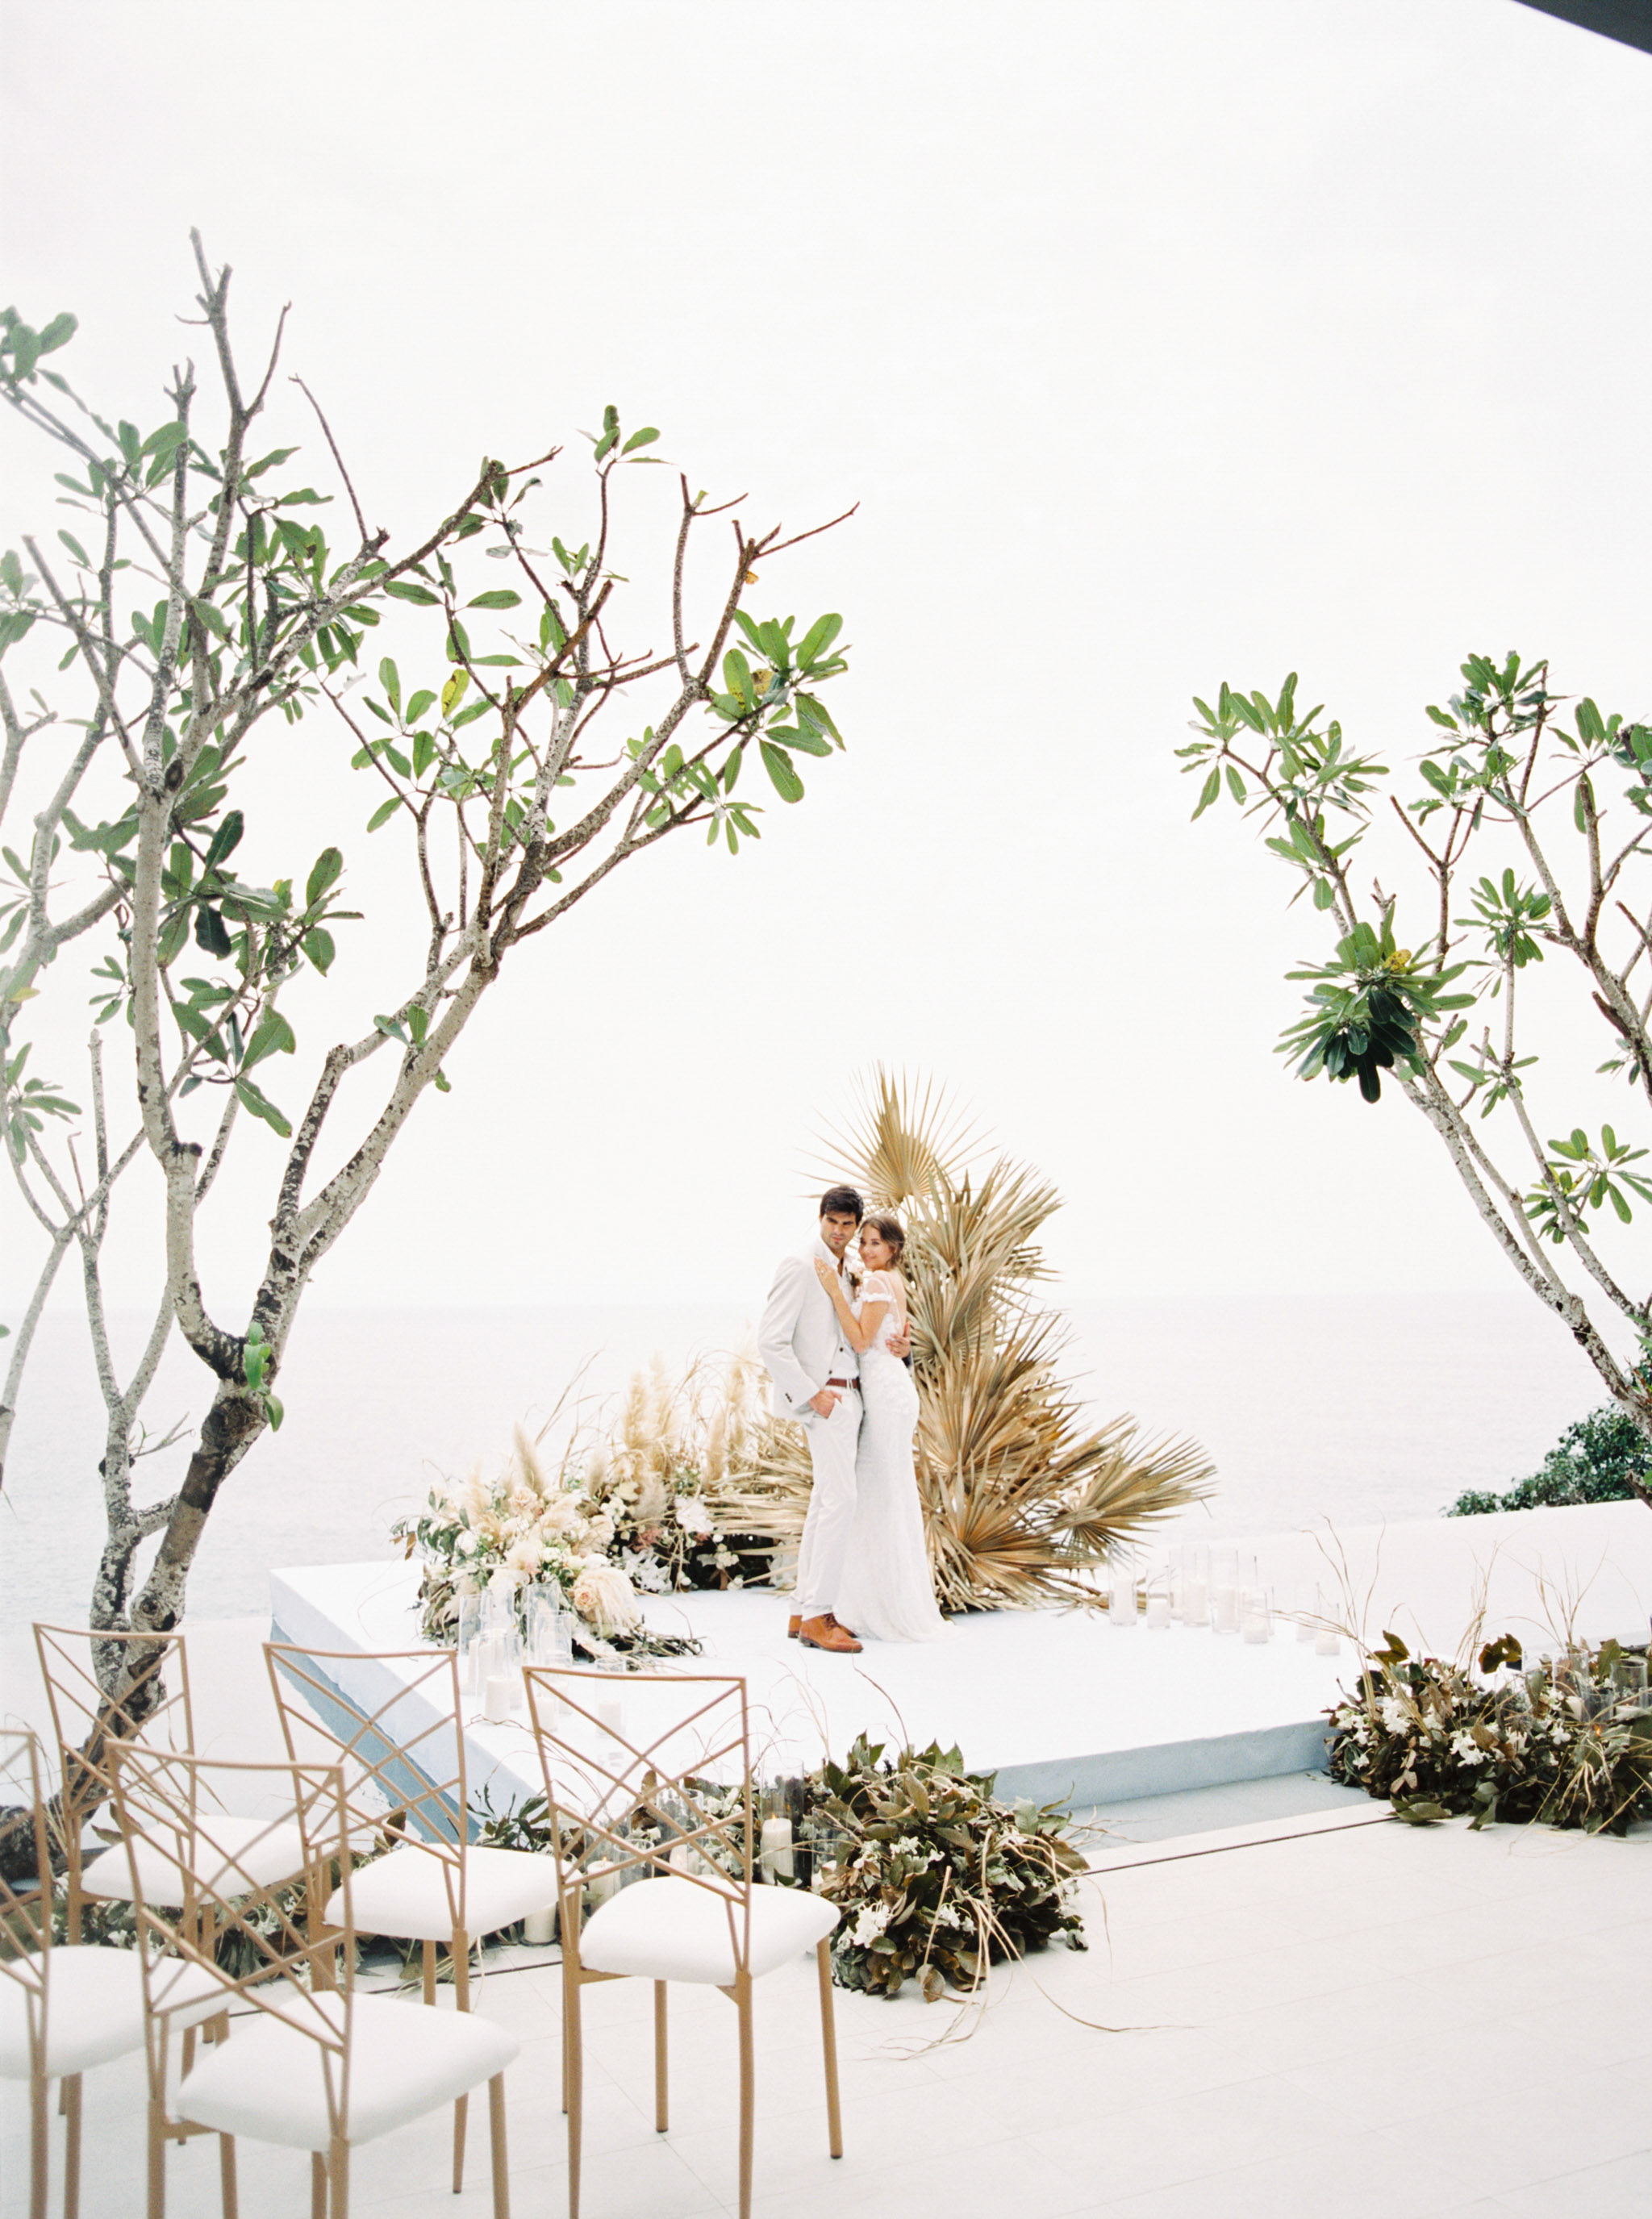 Destination Wedding at The Aquila Luxury Villas in Phuket Thailand Fine Art Film Wedding Photographer Sheri McMahon-00006-6.jpg